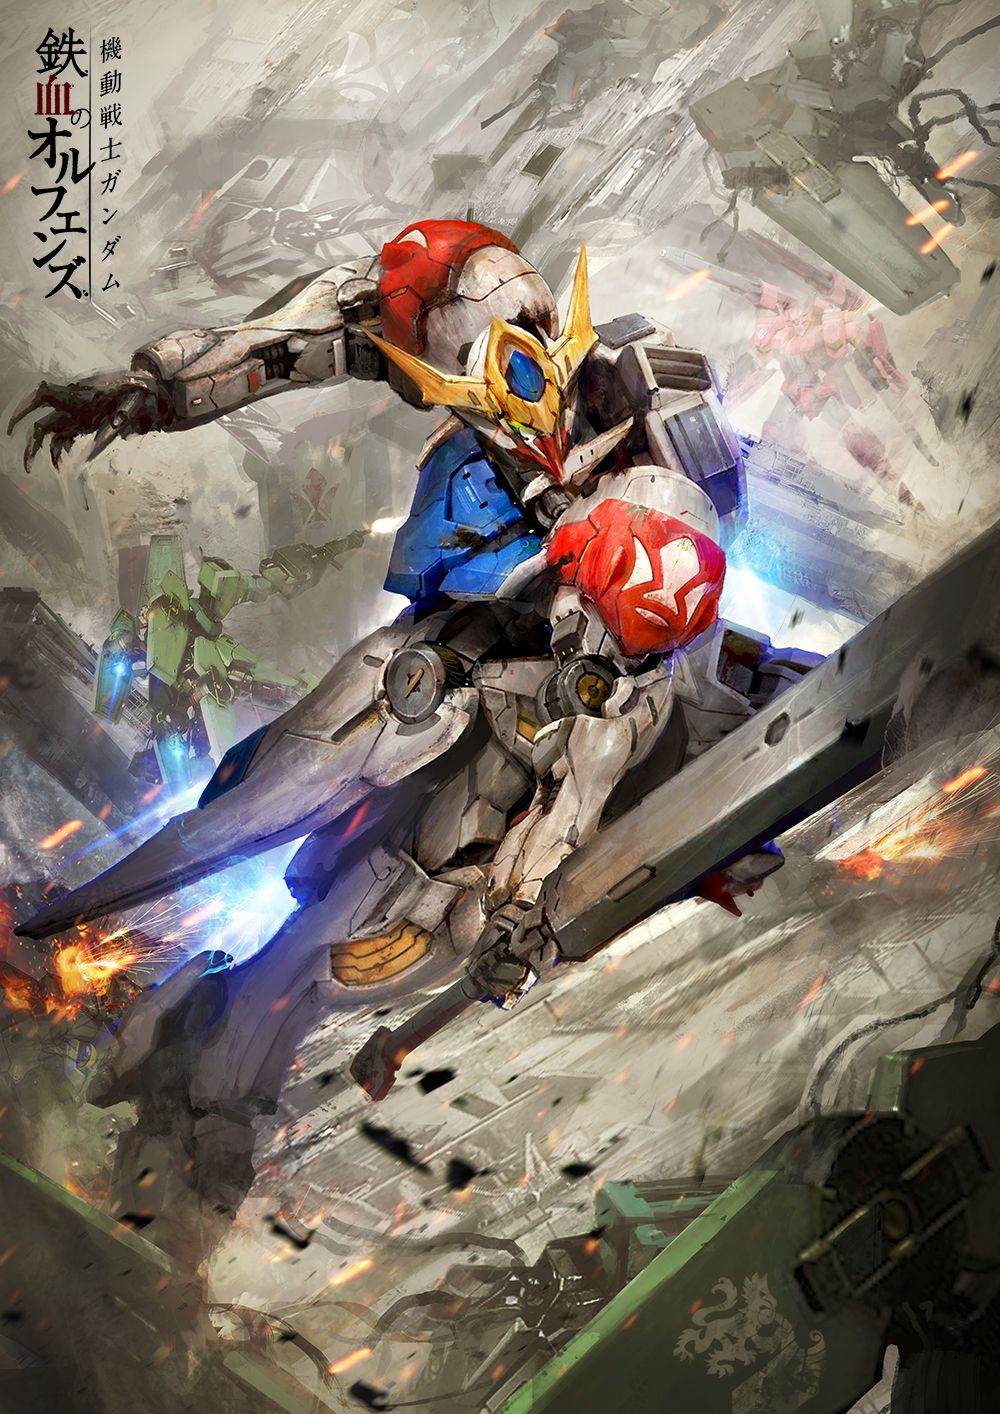 Fanart Awesome Gundam Wallpapers By Thedurrrrian Gundam Kits Collection News And Reviews Gundam Wallpapers Gundam Art Gundam Iron Blooded Orphans